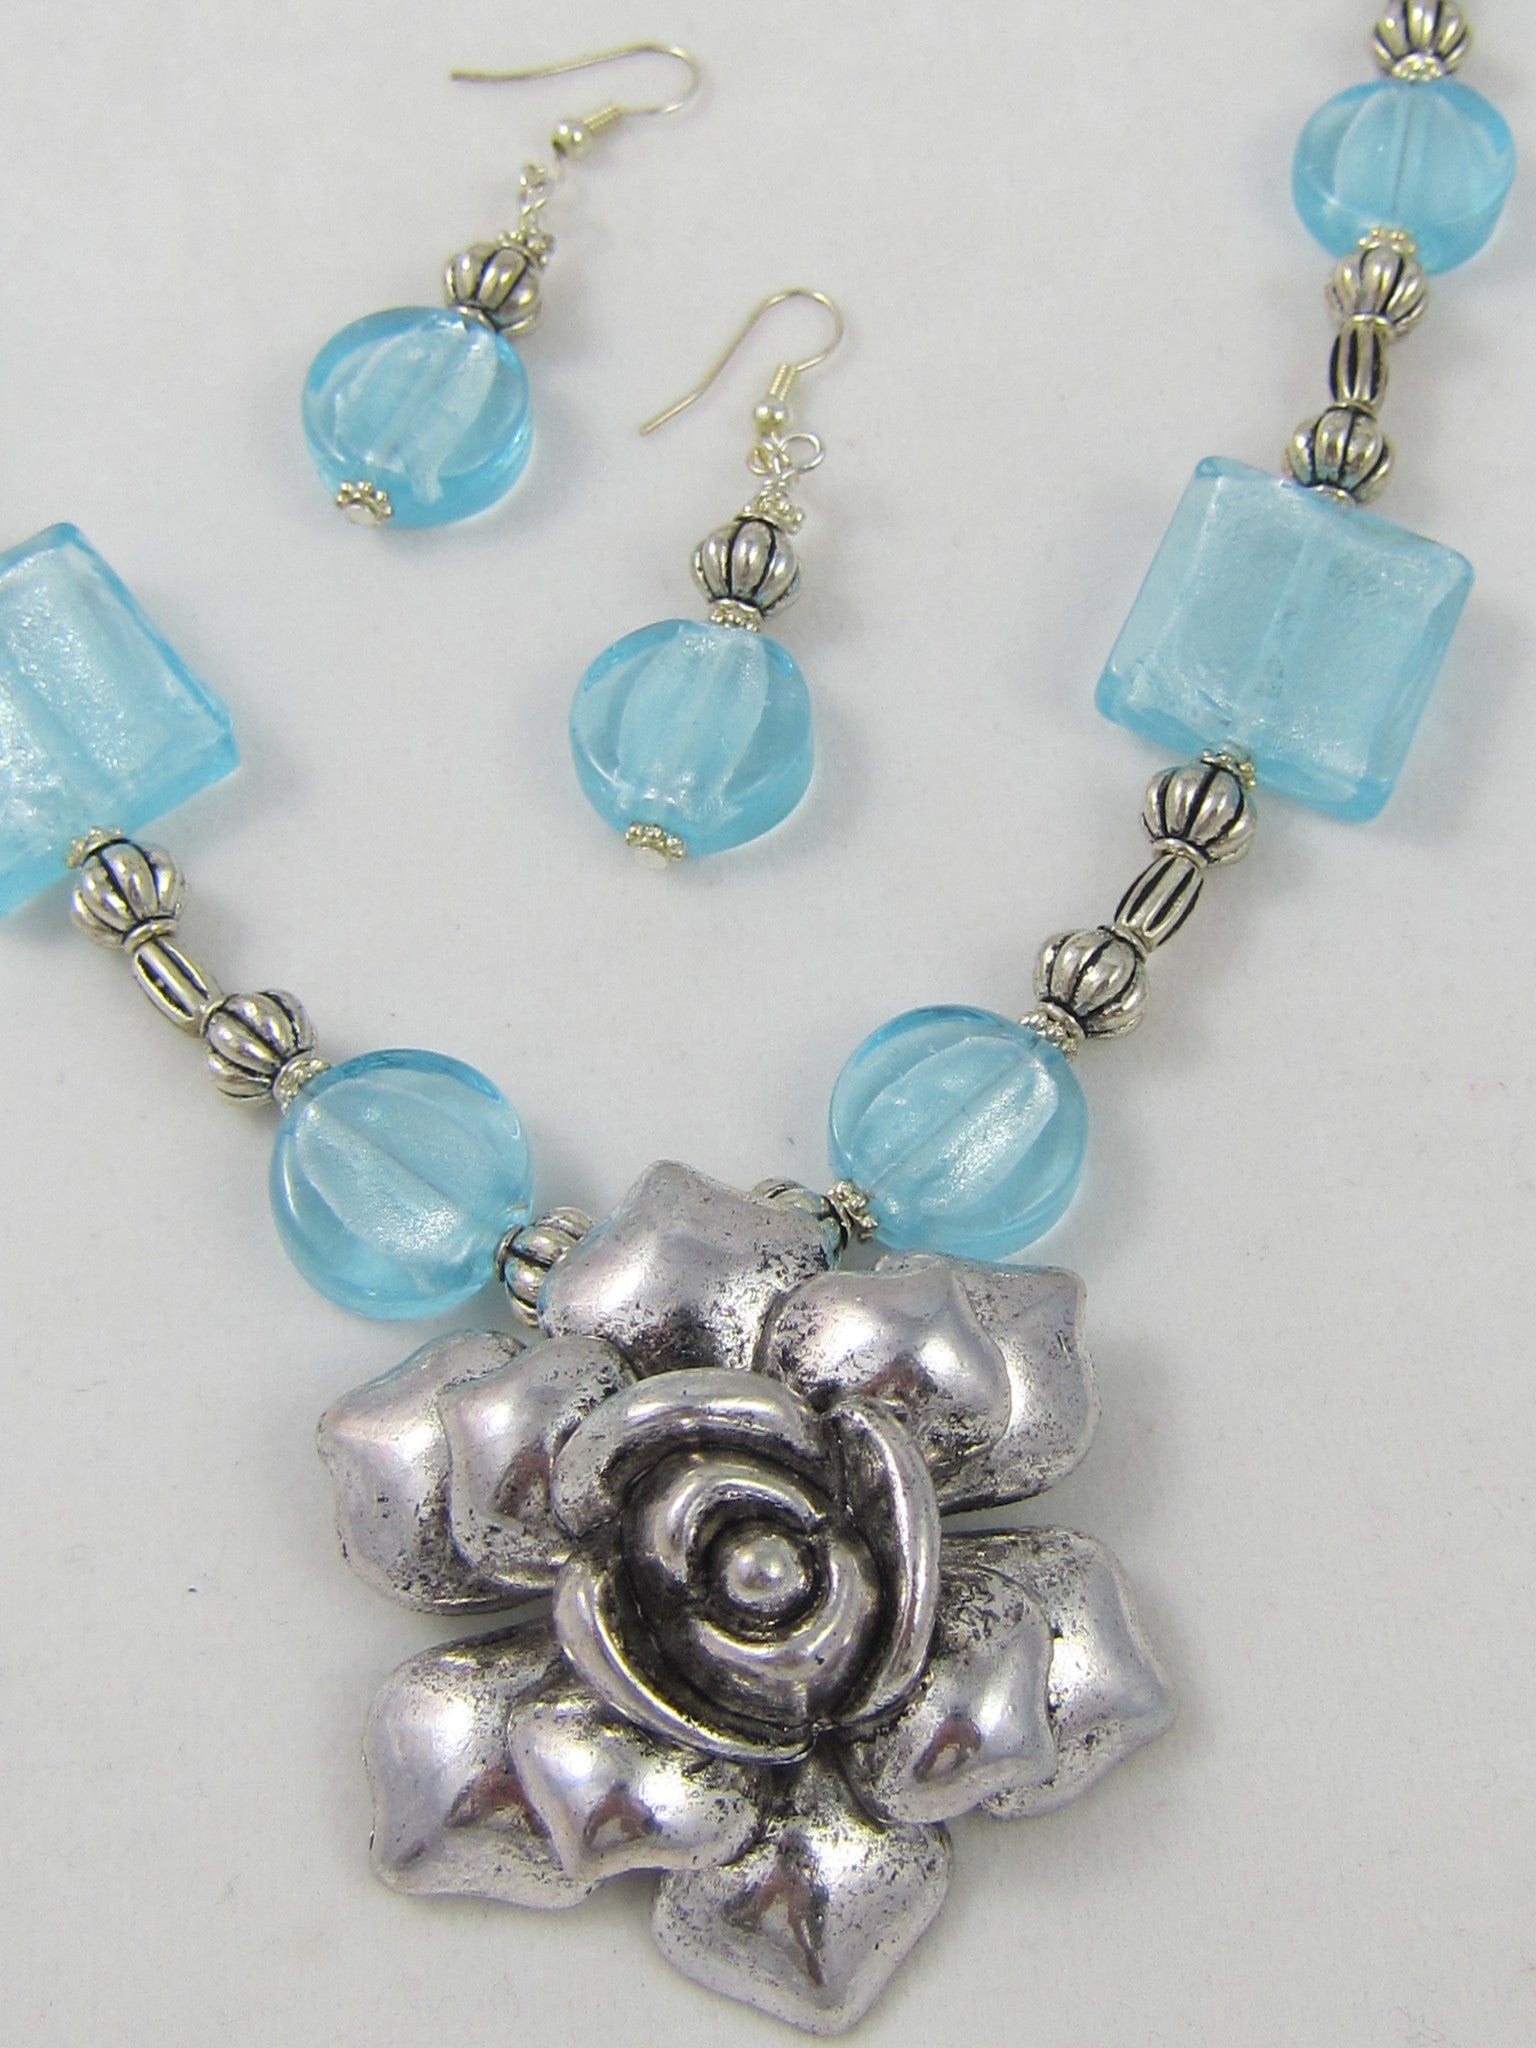 Ociana Blue Hand Made Glass Bead Pendant with Rose